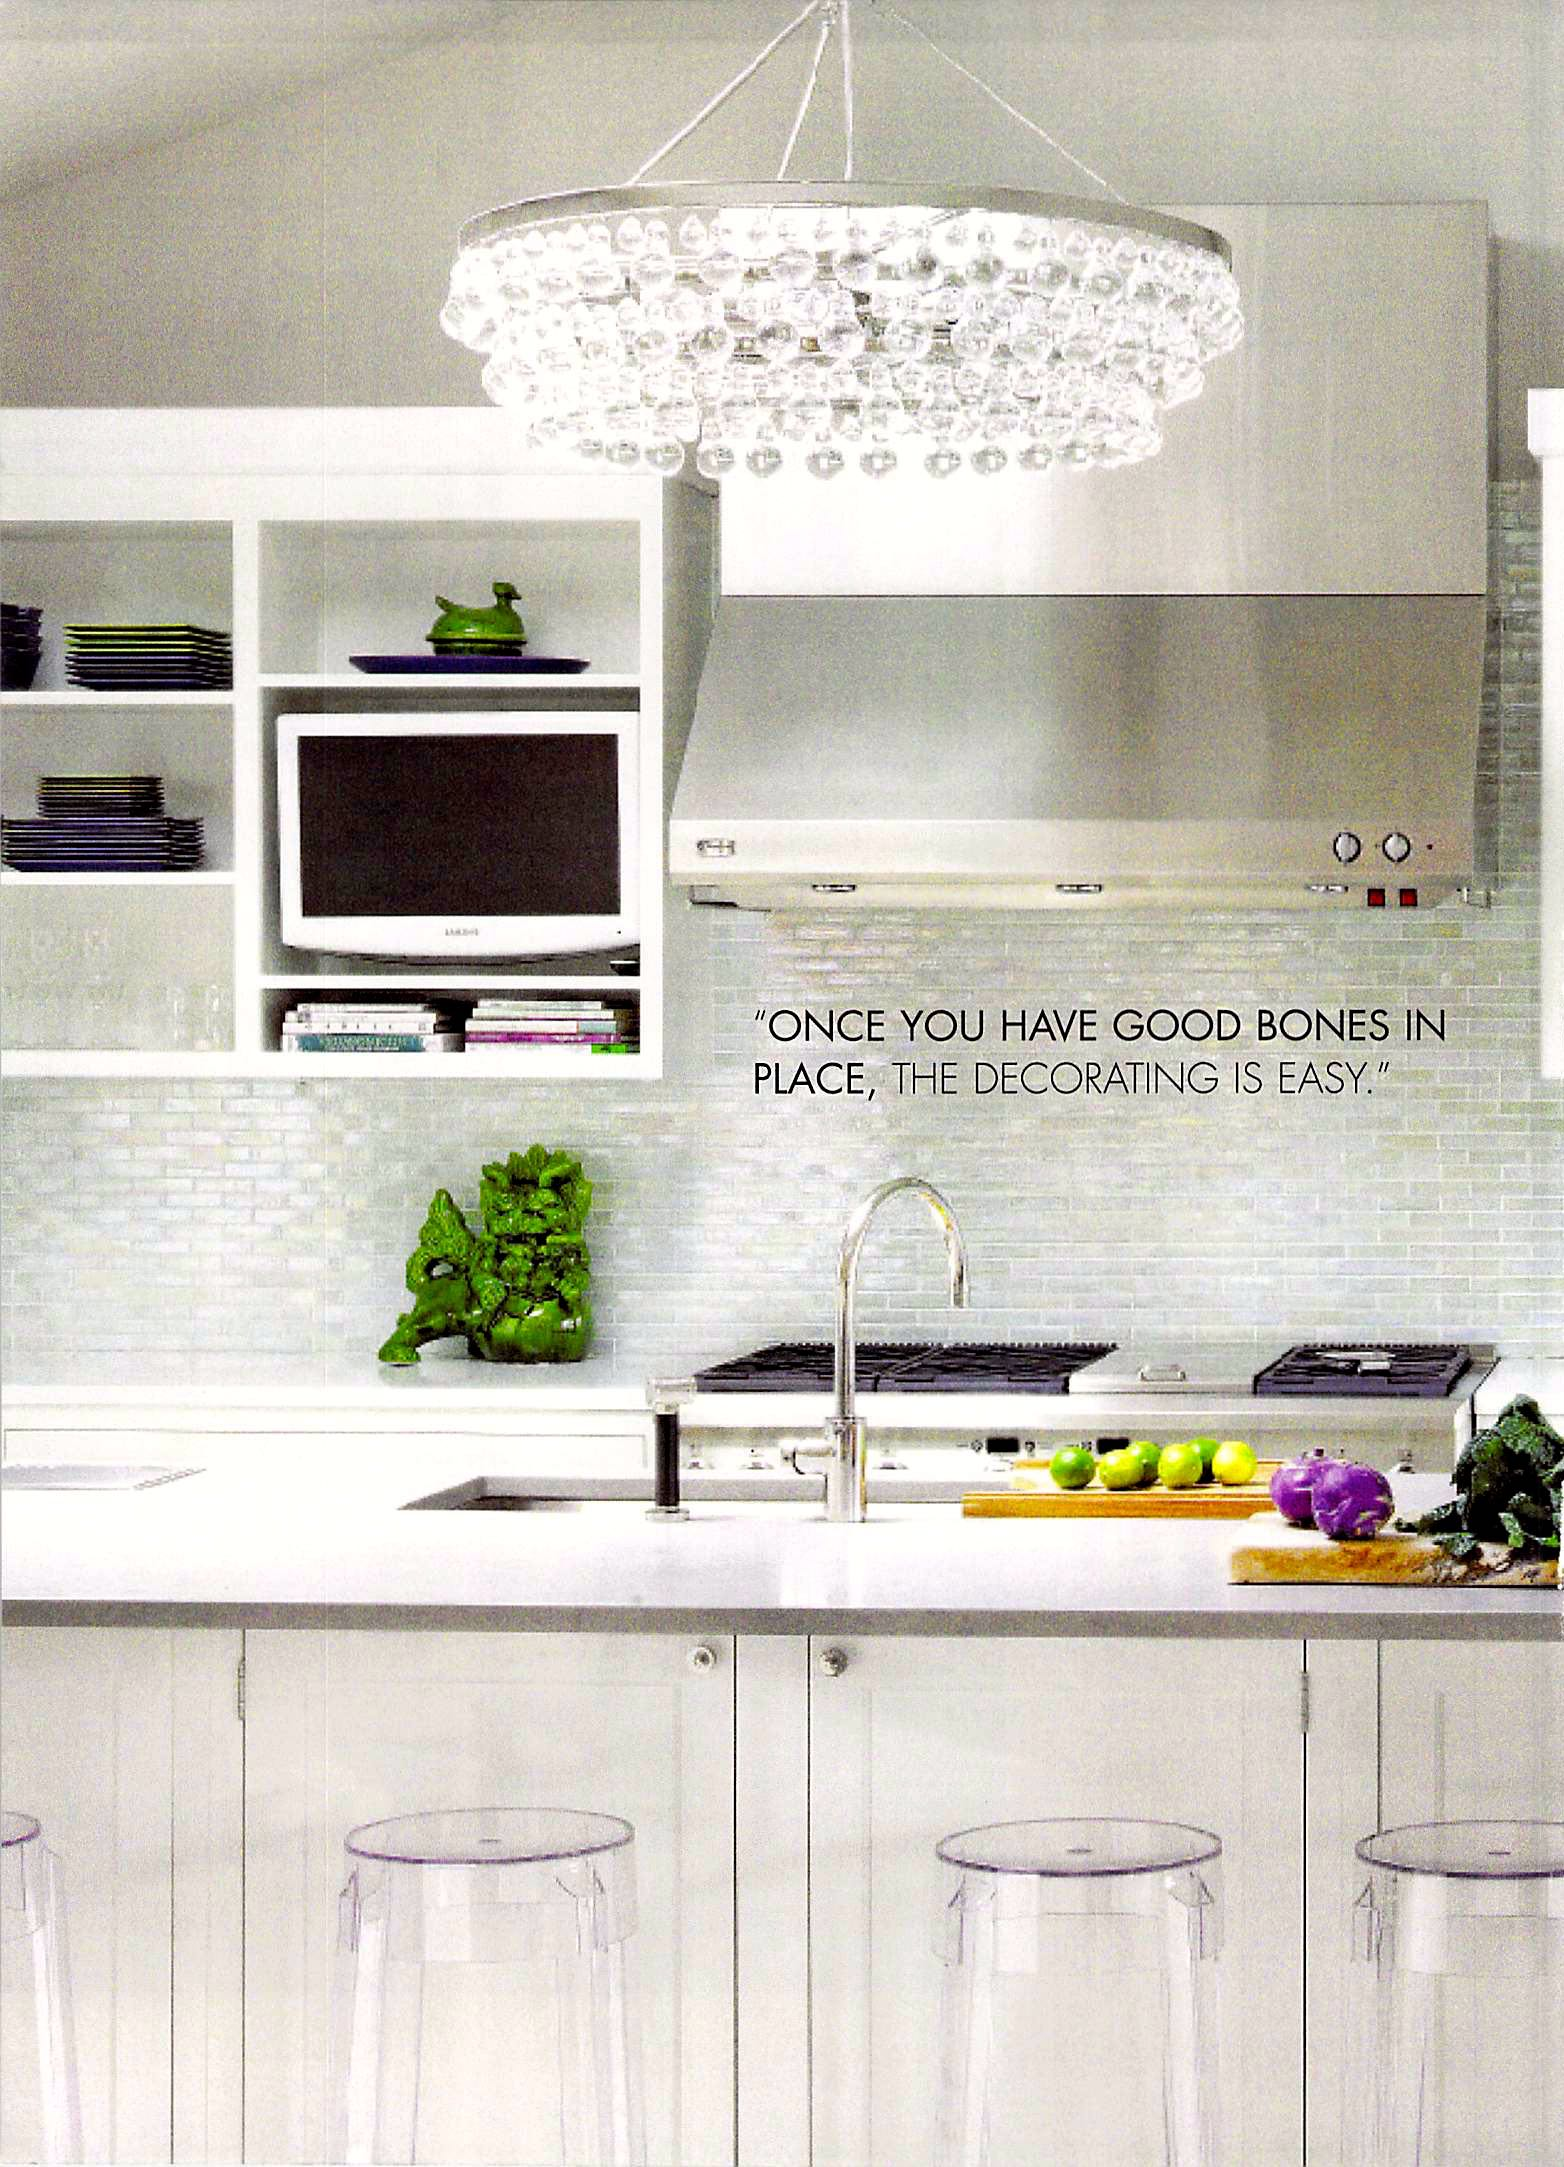 Kitchen Diner details in Rooms Magazine feature from Delray Beach interior designer Olga Adler Interiors